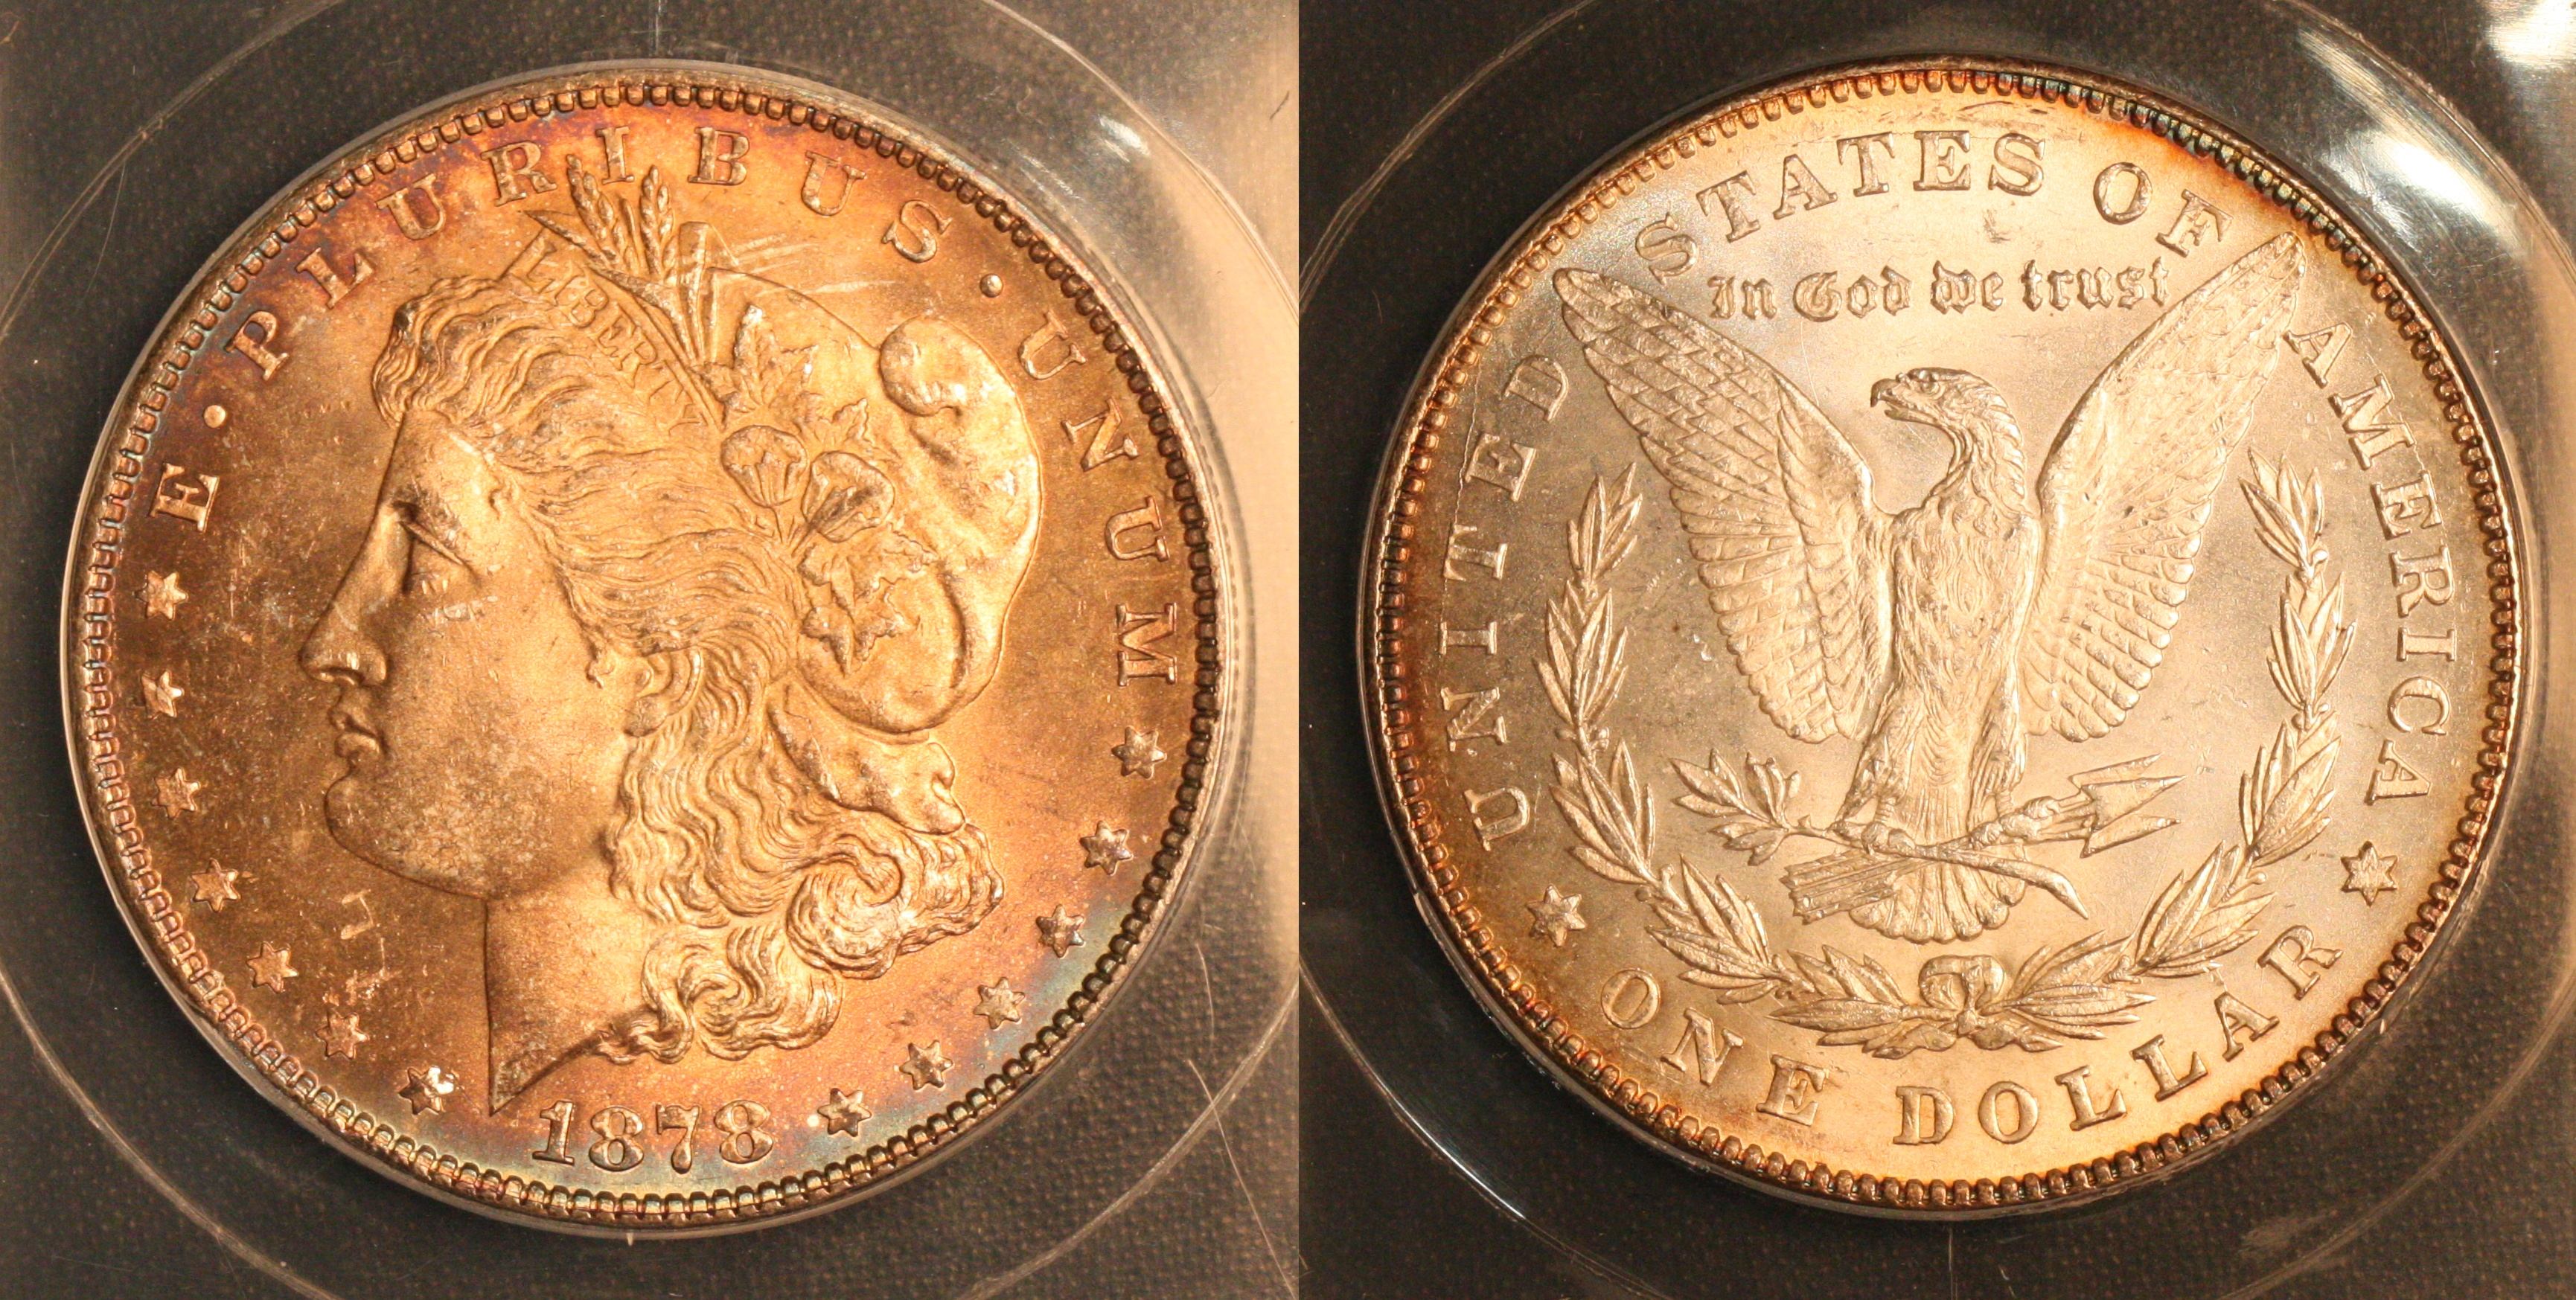 1878 7 Tailfeathers Morgan Silver Dollar ANACS MS-65 camera